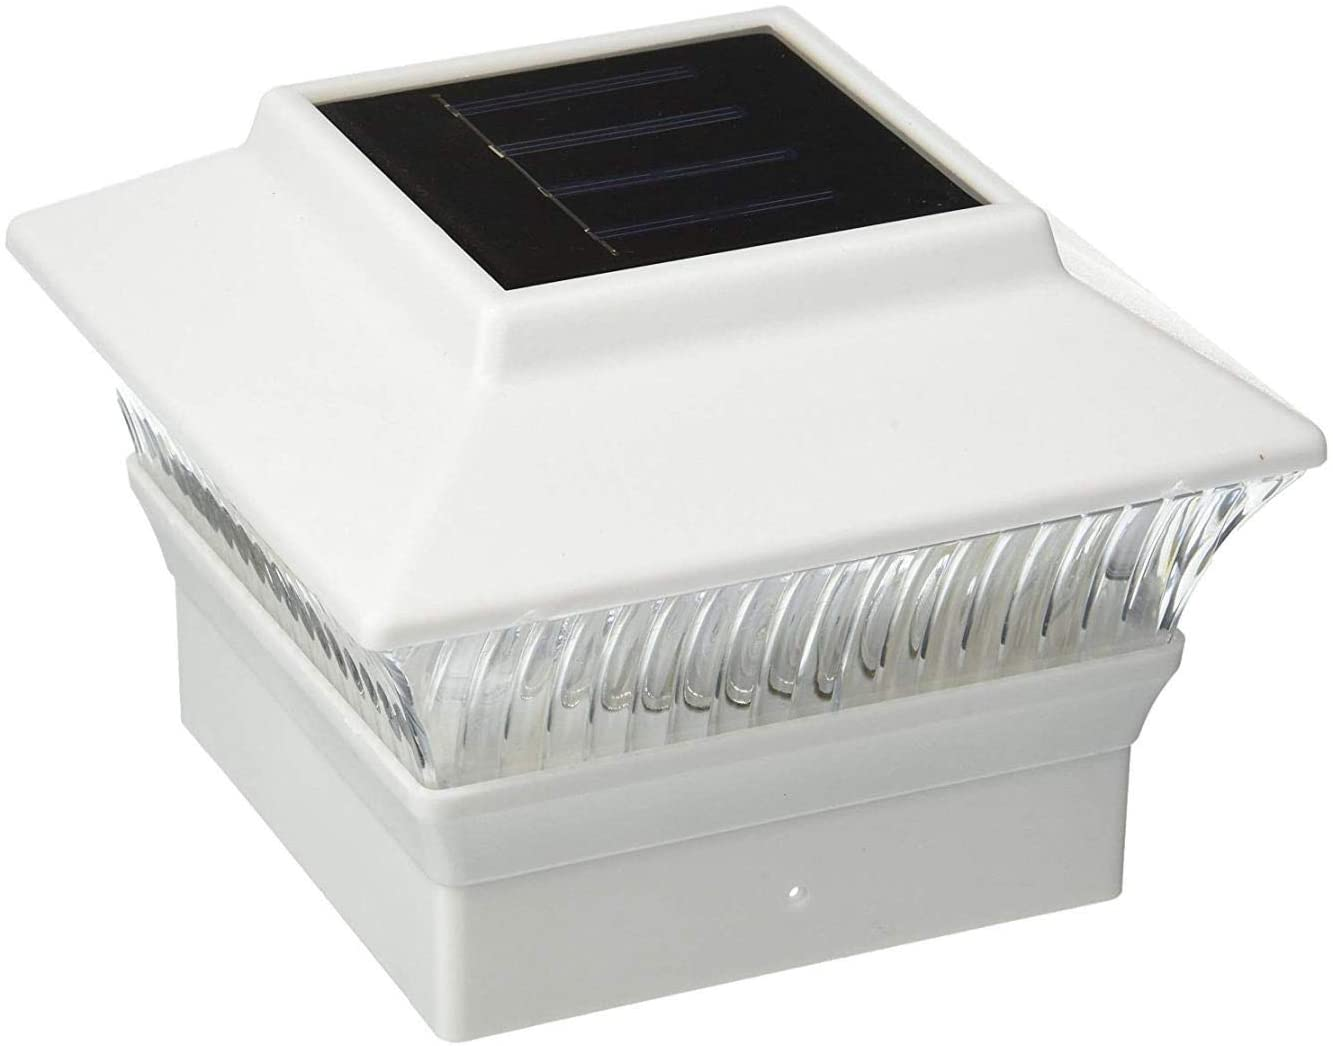 Exquisite Selebrity 12 Pack 4x4 Solar Powered Plastic White LED Square Garden Deck Patio Fence Pathway Post Light